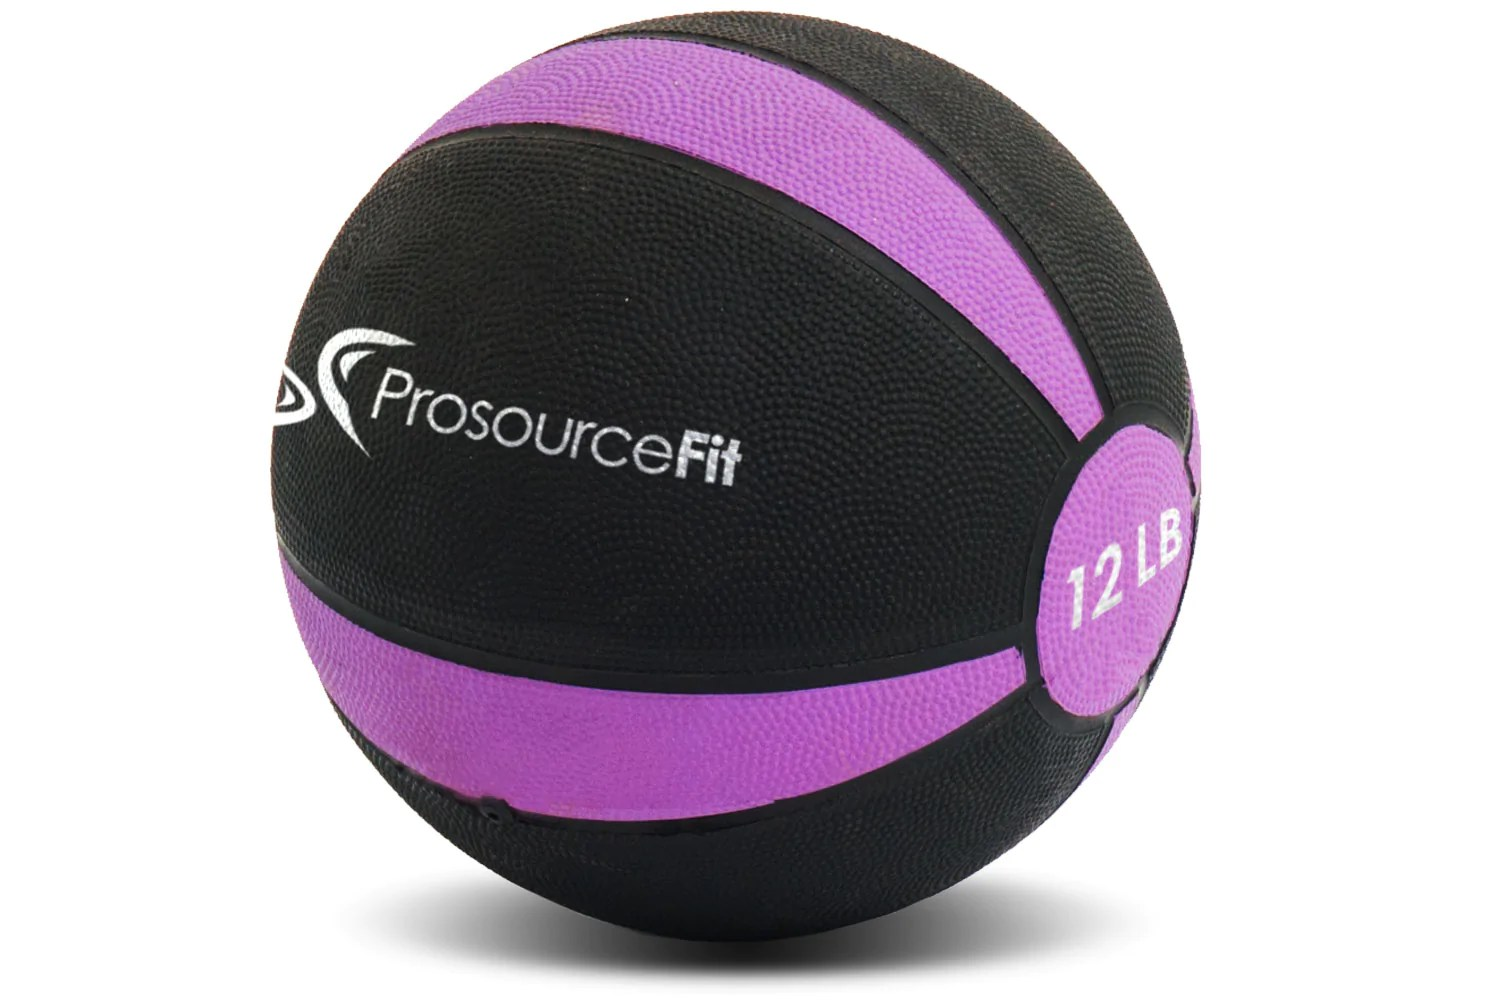 Rubber Medicine Ball 6 Lb - Prosourcefit